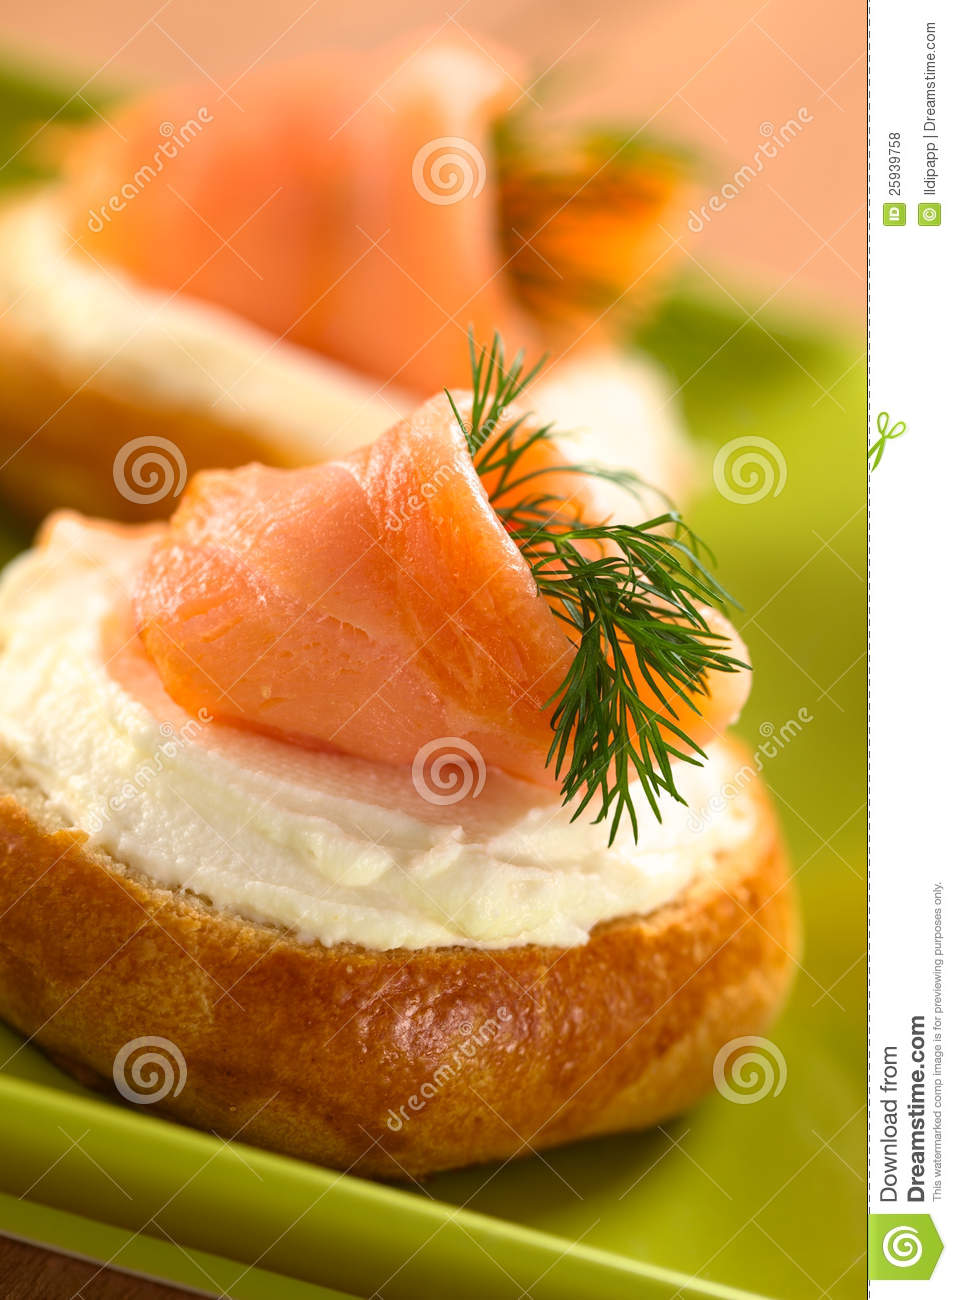 Smoked salmon and cream cheese canape royalty free stock for Smoked salmon cream cheese canape